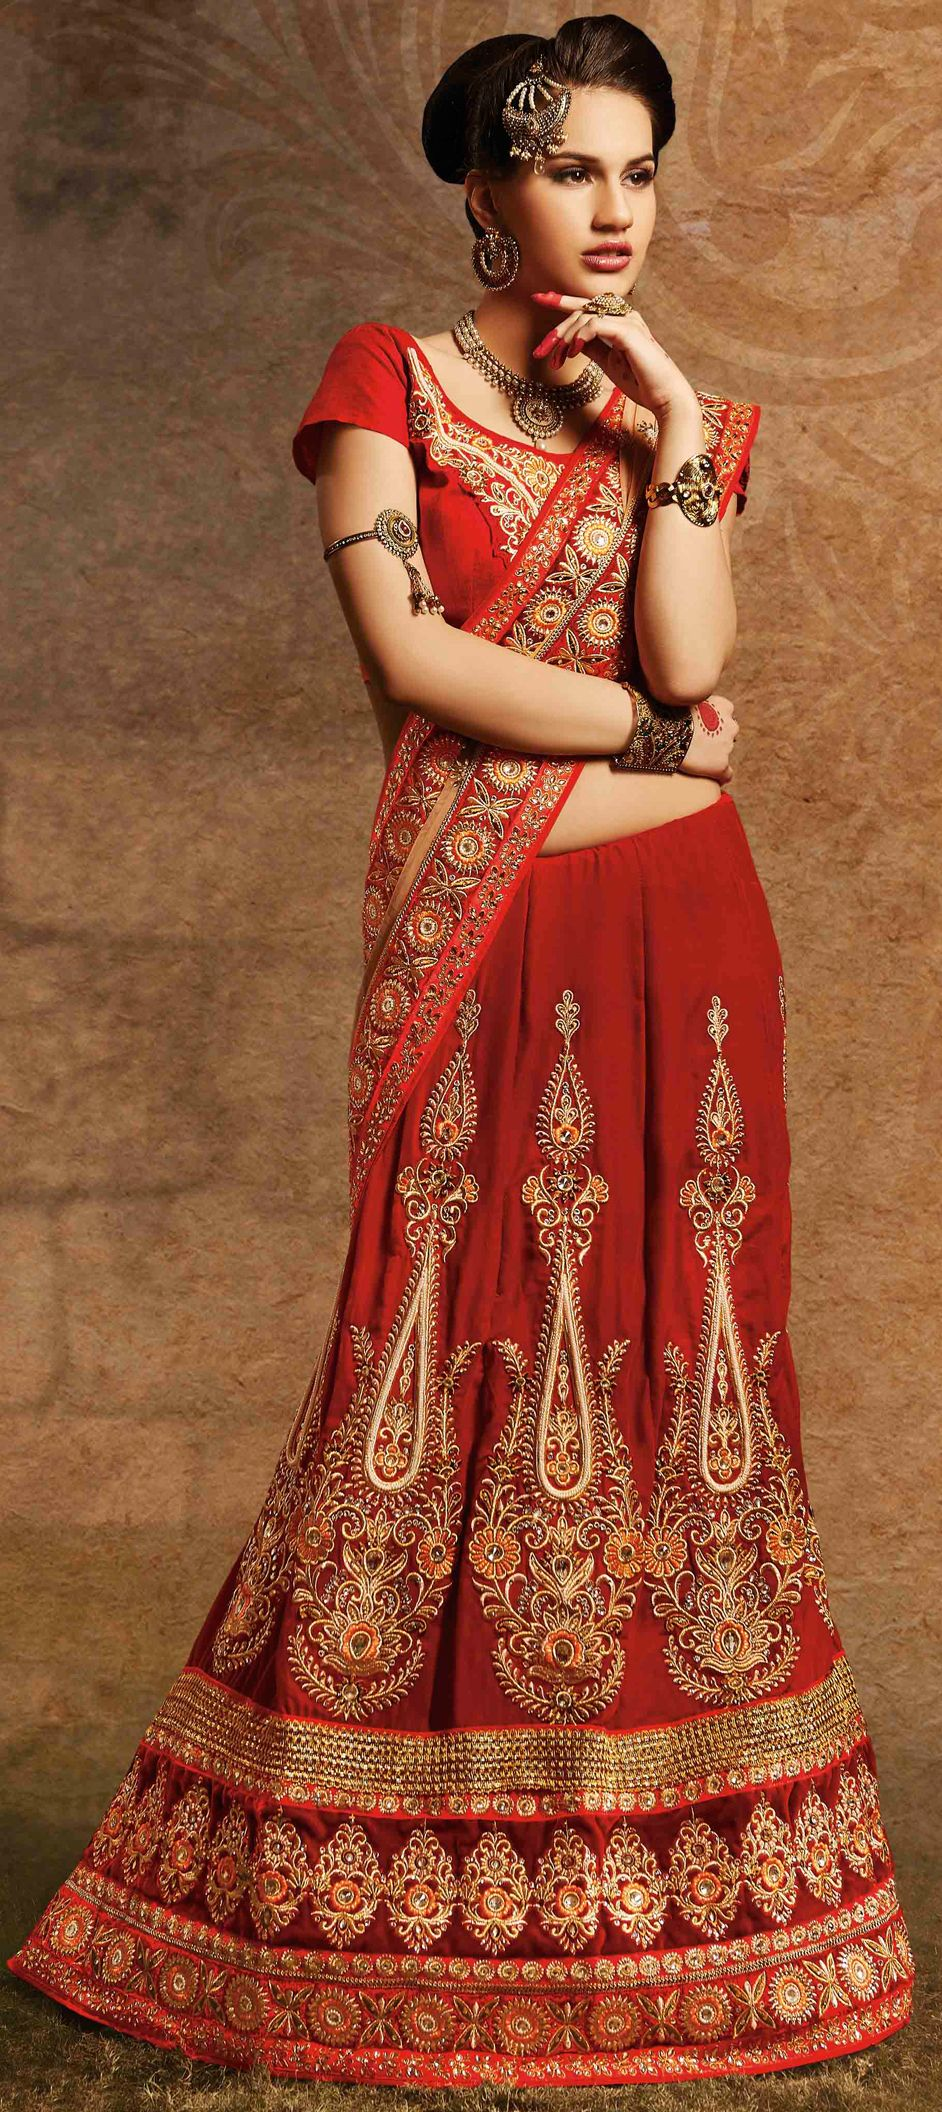 137305: Red and Maroon color family Saree with matching unstitched ...